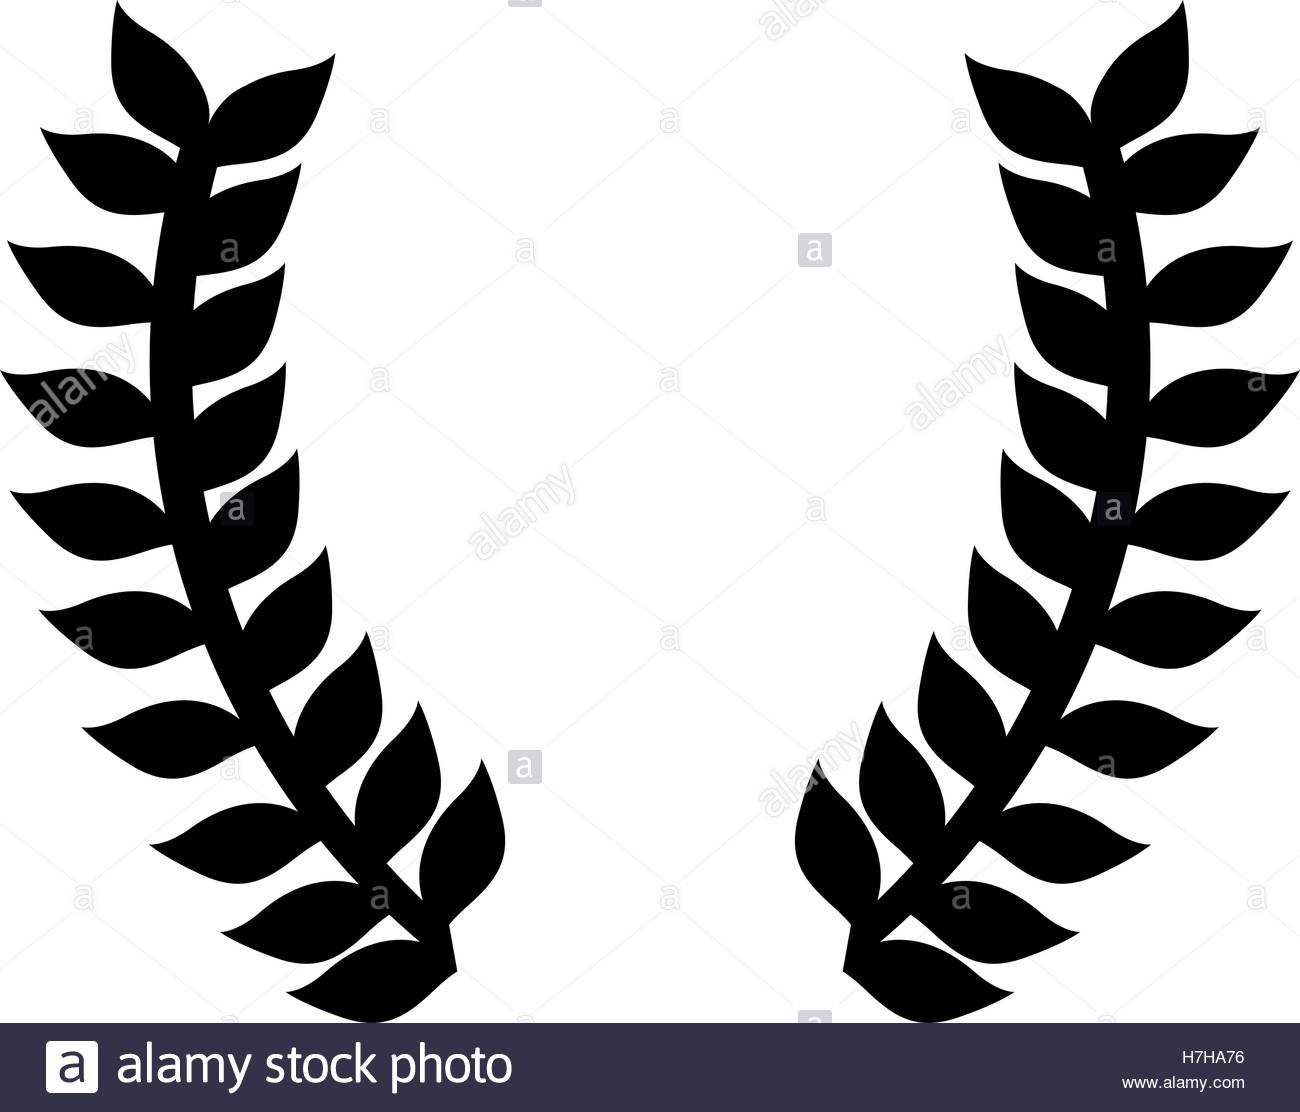 1300x1112 Silhouette Of Laurel Leaves Wreath Icon Over White Background